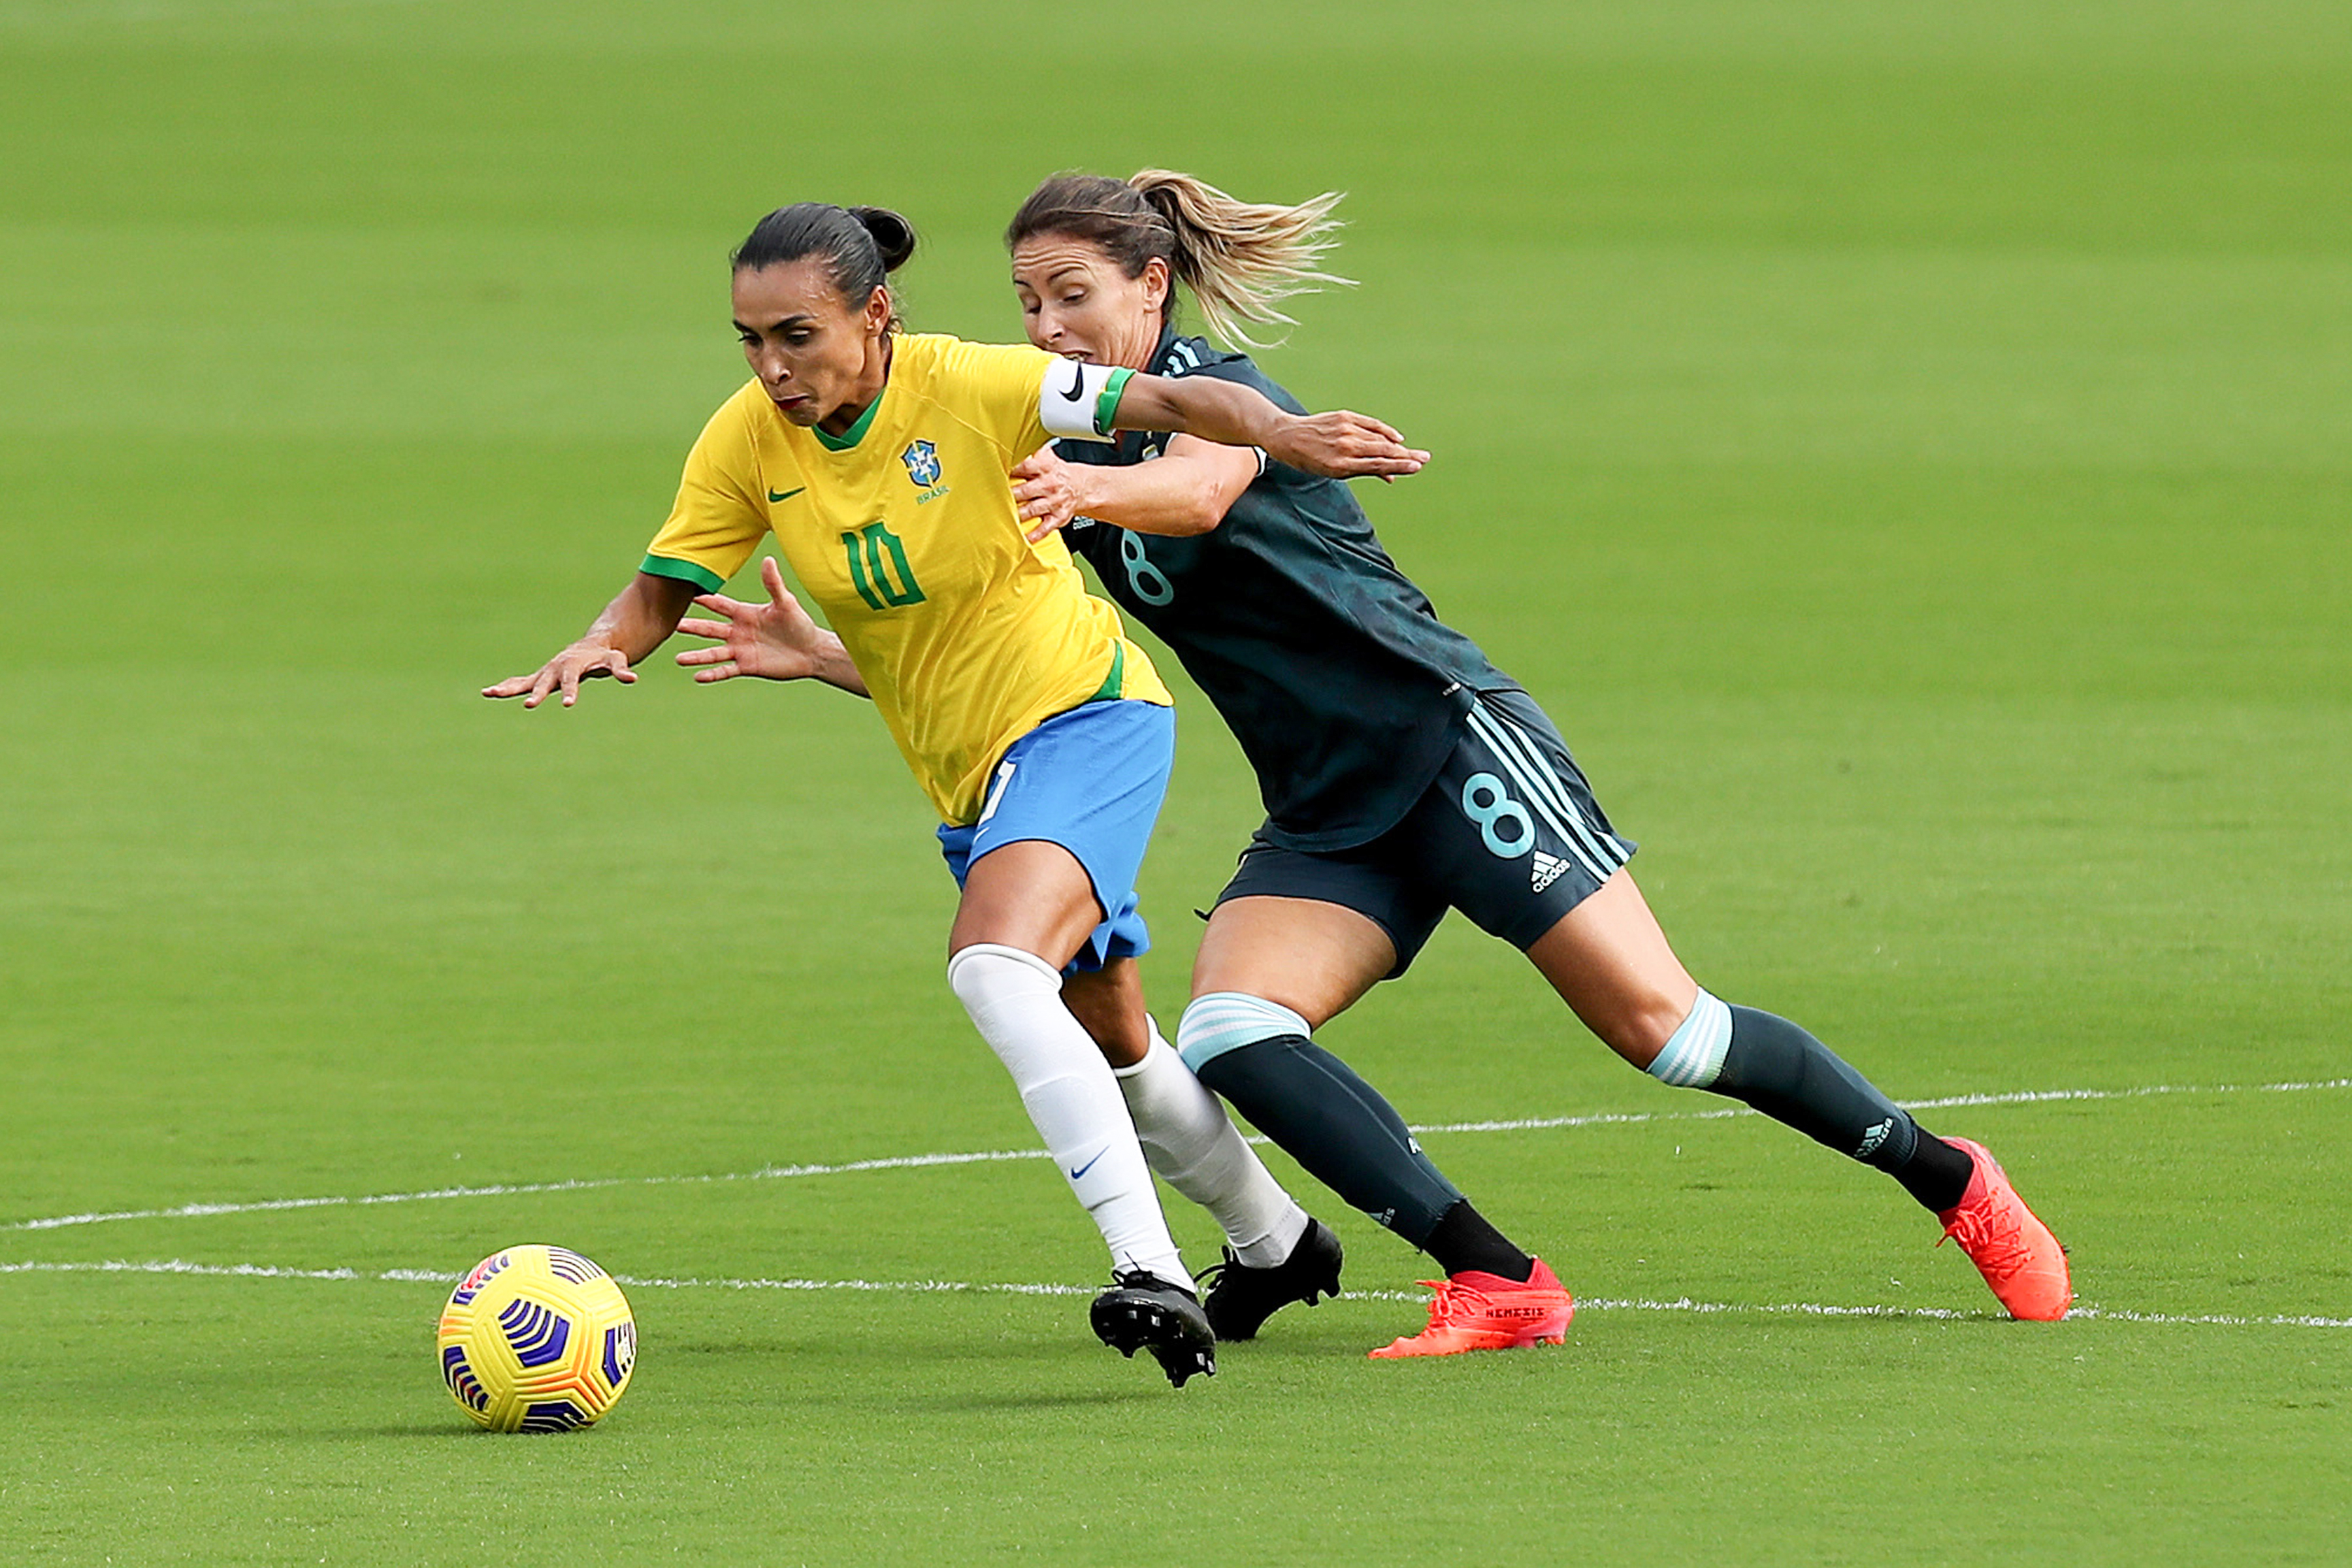 2021 SheBelieves Cup - Brazil v Argentina